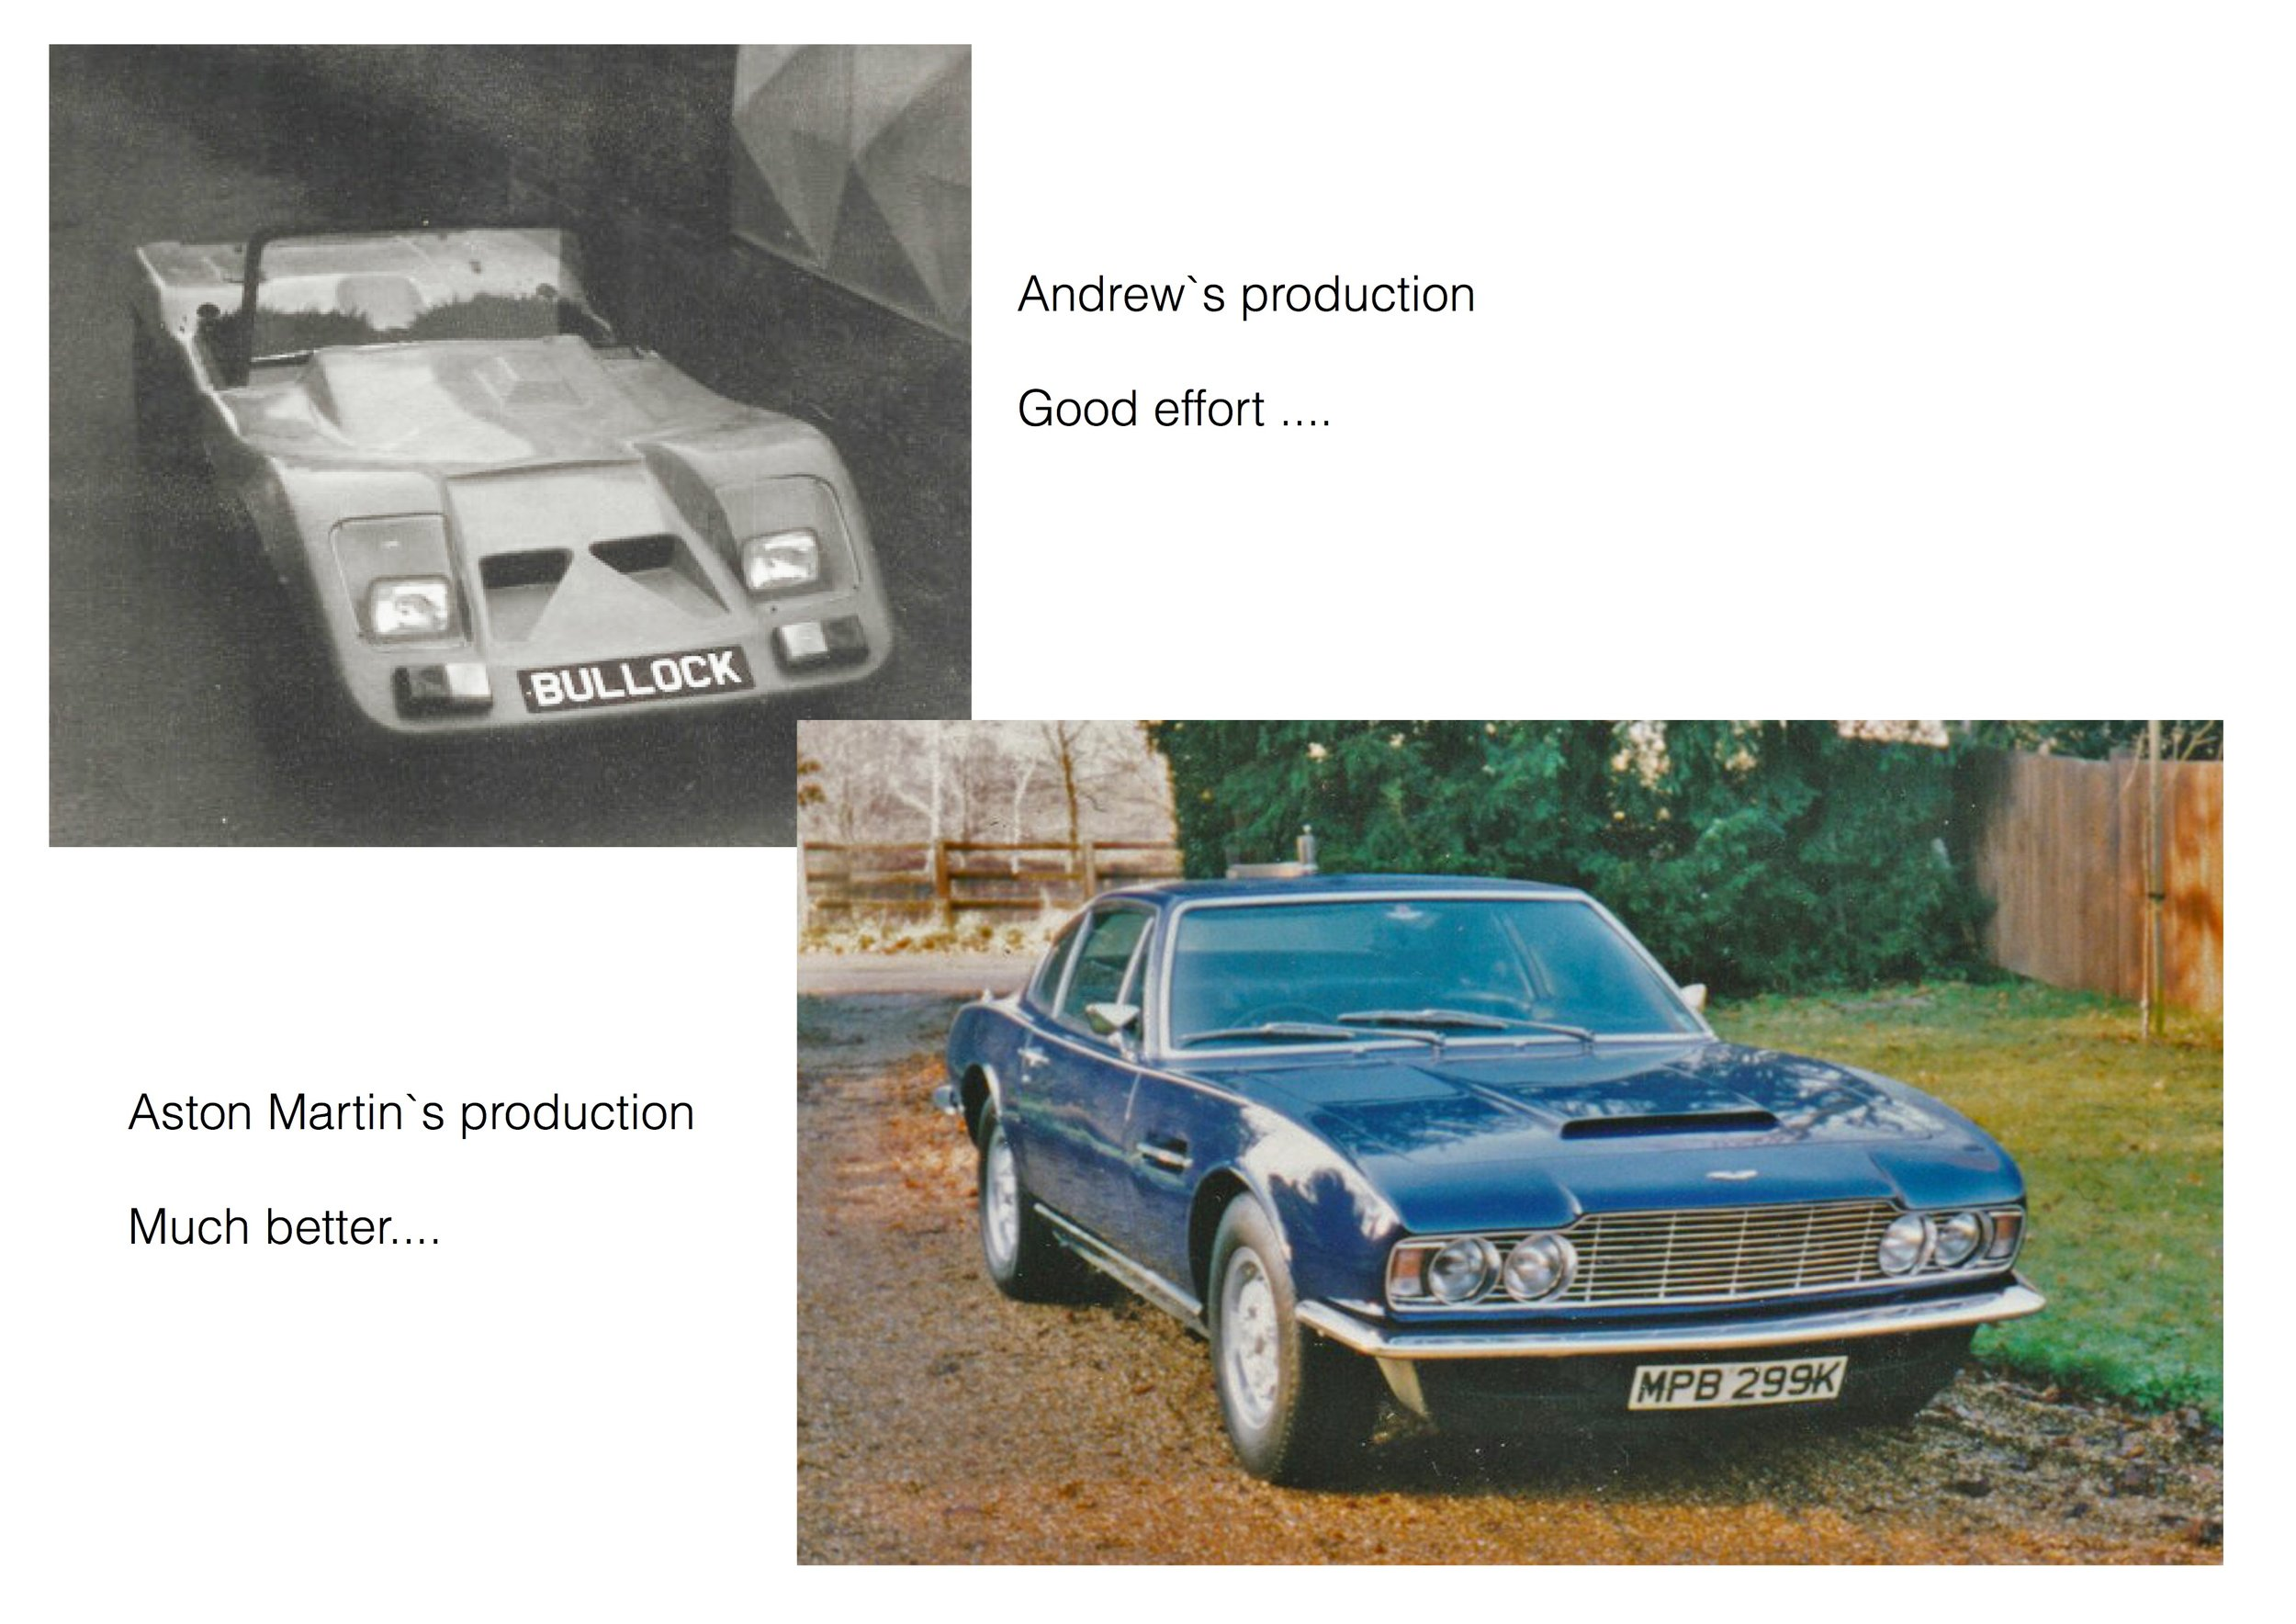 Cars - With regular income from the film business, Andrew gave up production of the `Bullock` sports cars he had been building since leaving Art School.Although the `Bullock` cars performed well, even on the track. After making 52 of them, Andrew decided the film business was far more lucrative.So he bought an Aston Martin. - well sort of….He actually swapped it for some acrylic Aeroplane canopies he made for `Chipmunk` training aircraft.